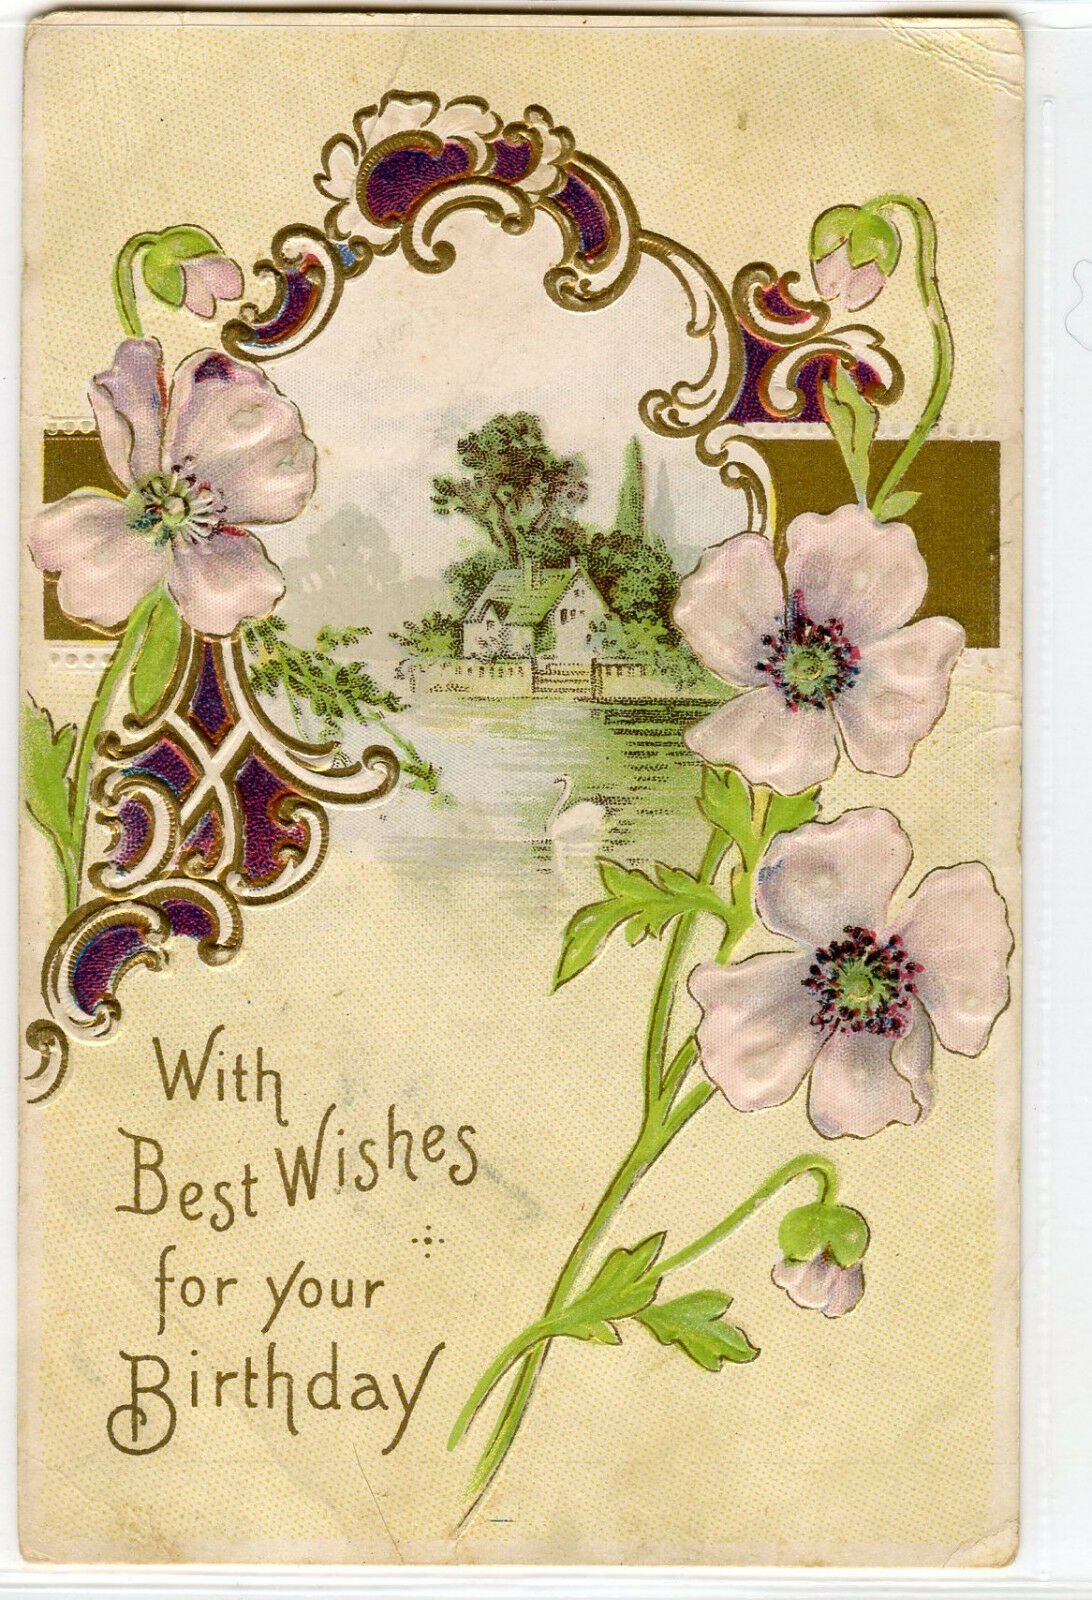 Vintage antique birthday postcard 1910 embossed gold purple green vintage antique birthday postcard 1910 embossed gold purple green flowers 1 of 2only 1 available izmirmasajfo